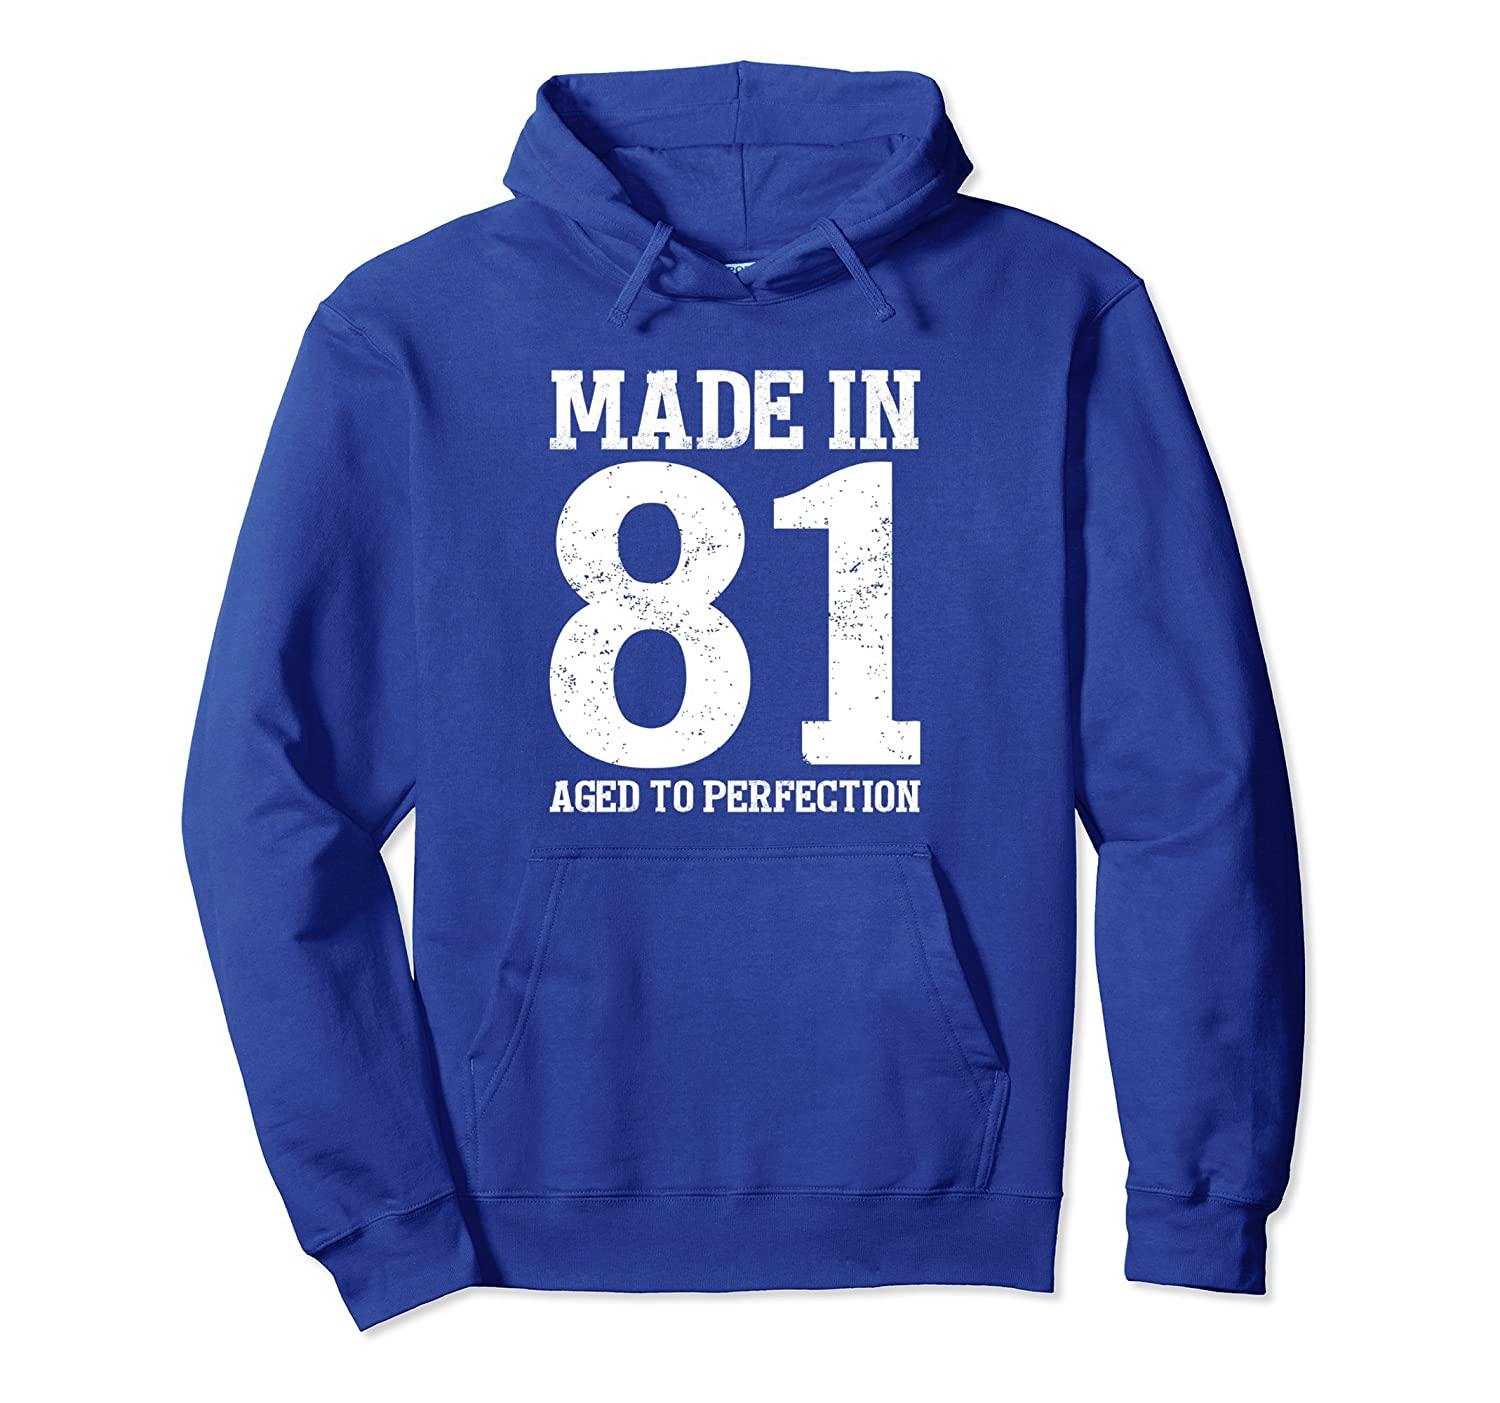 37th Birthday Hoodie Gift Mom Dad Men Women Age 37-ah my shirt one gift